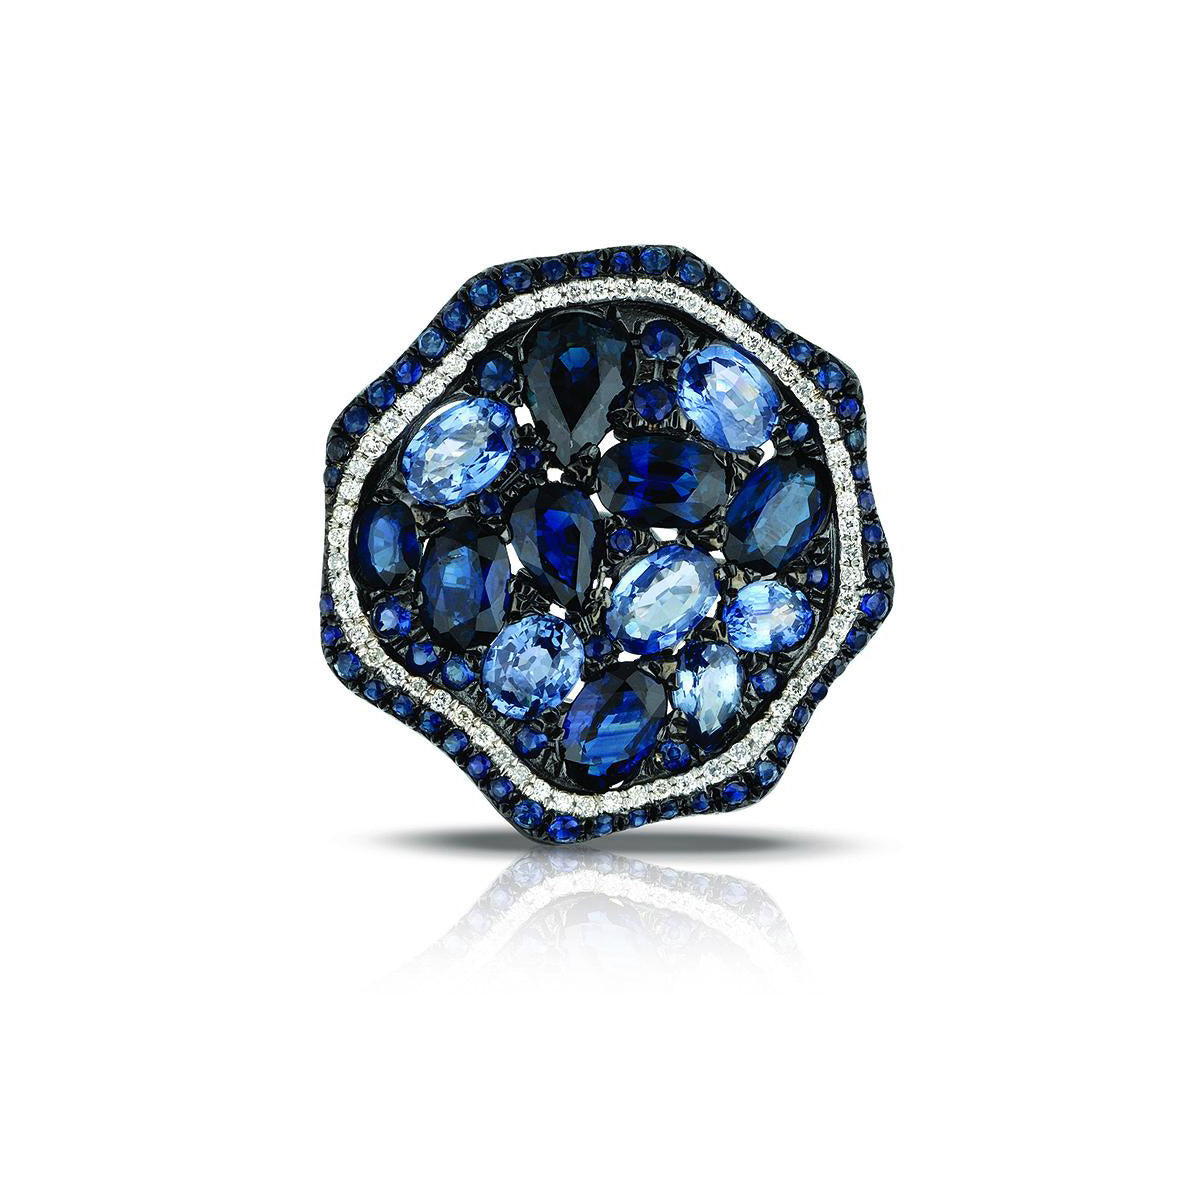 Marco Moore 14K White Gold Sapphire and White Diamond Ring